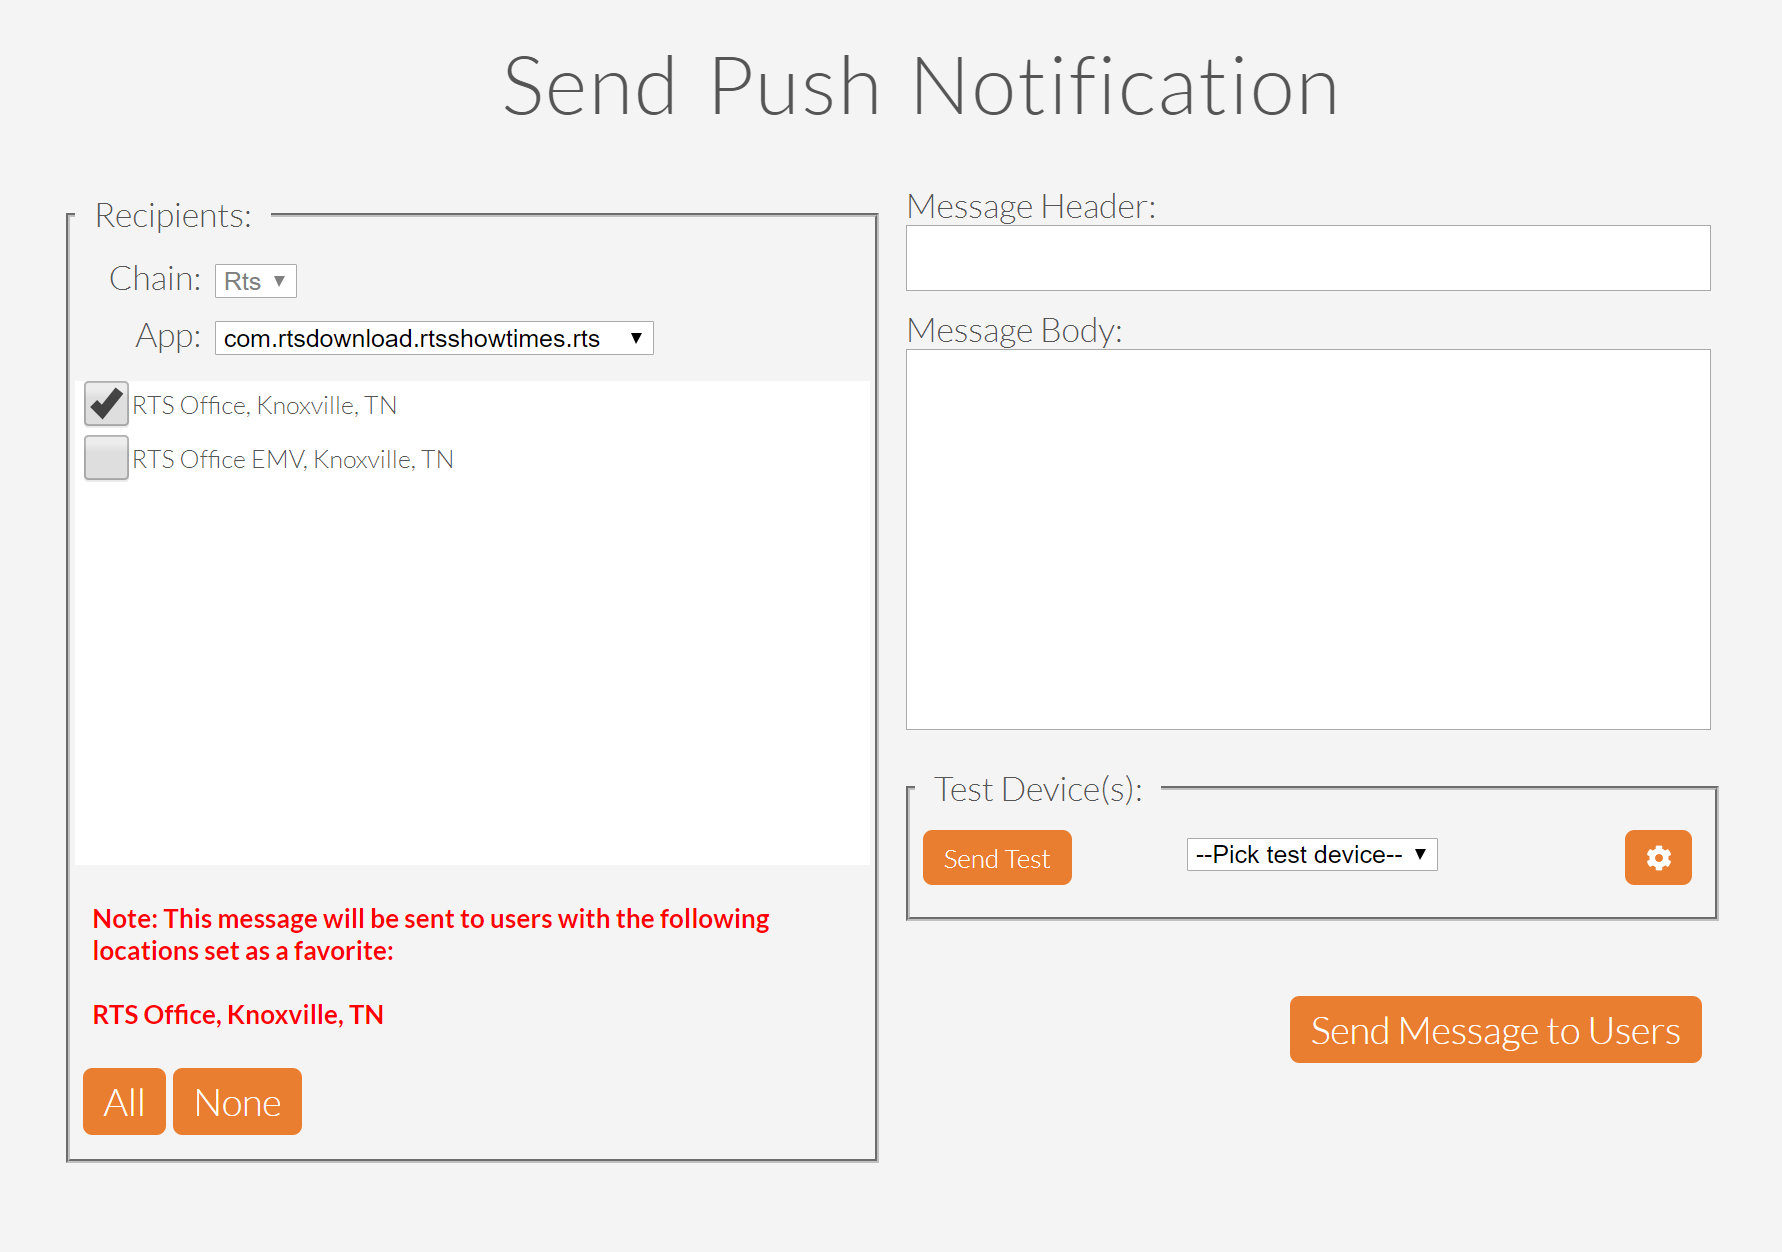 PushNotification-SingleLocation.png